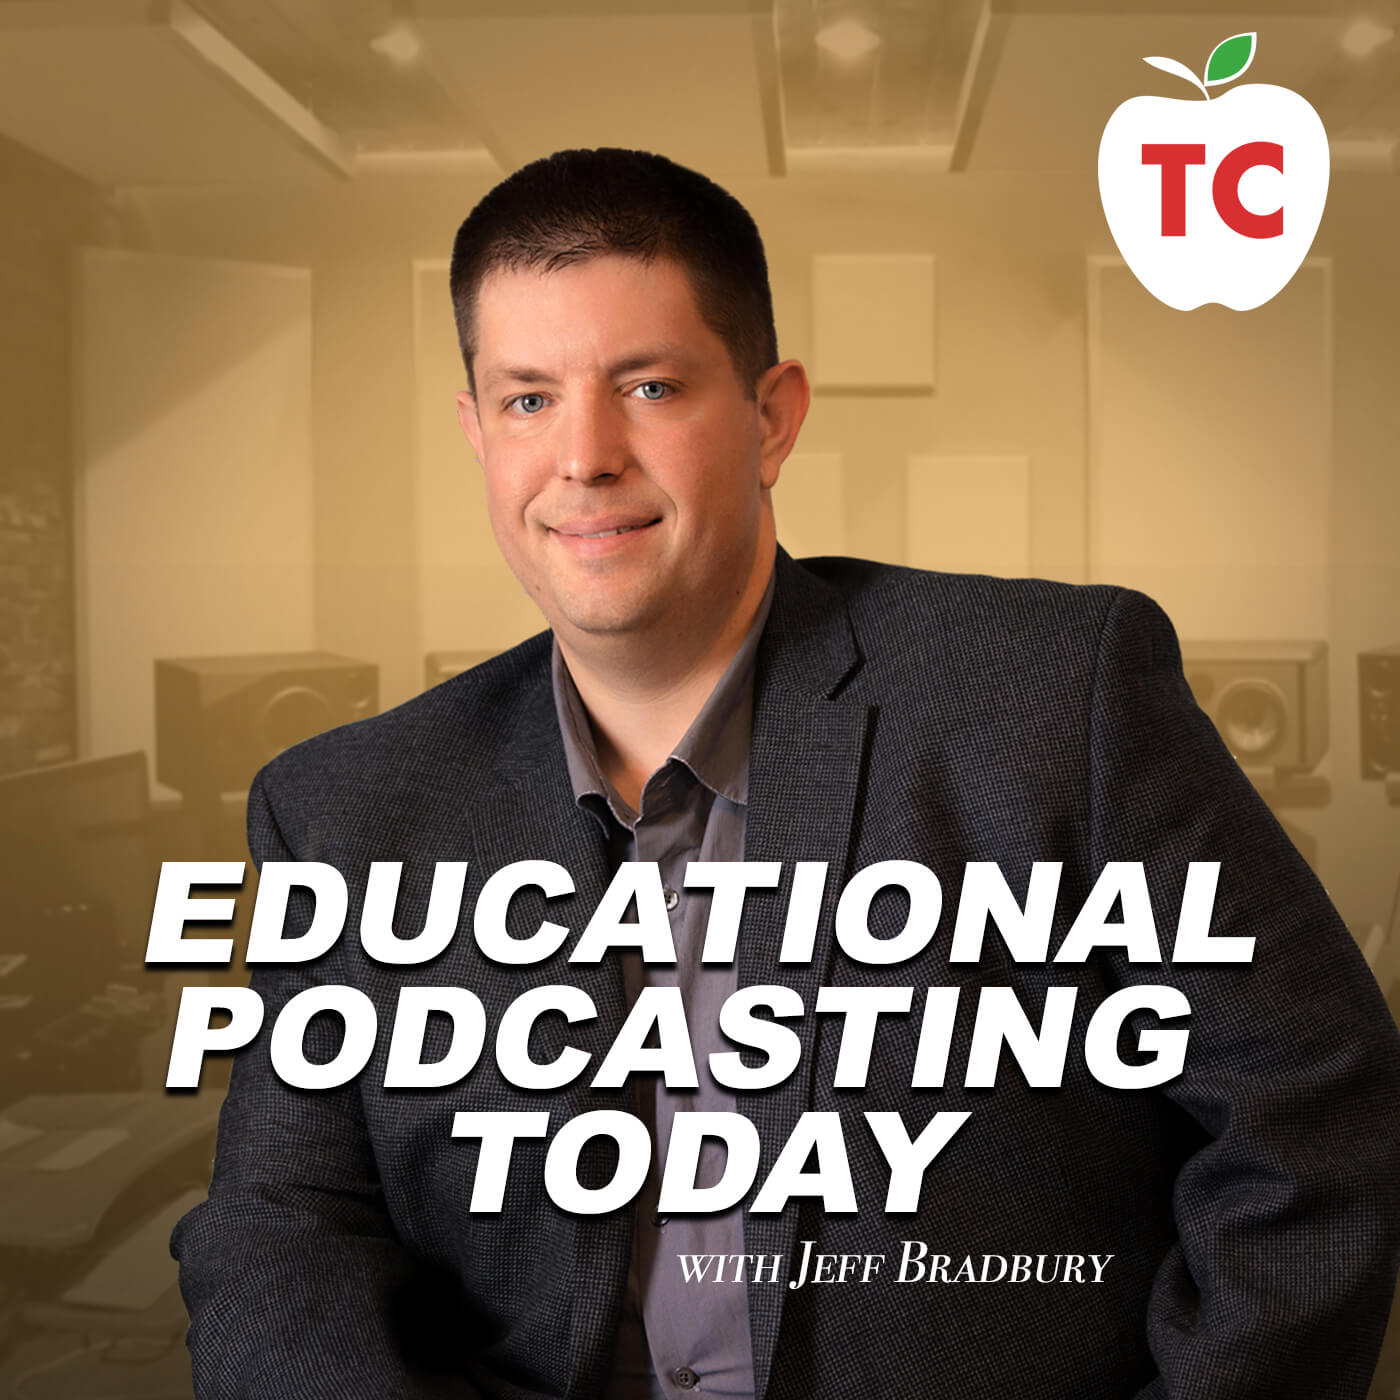 Educational Podcasting Today